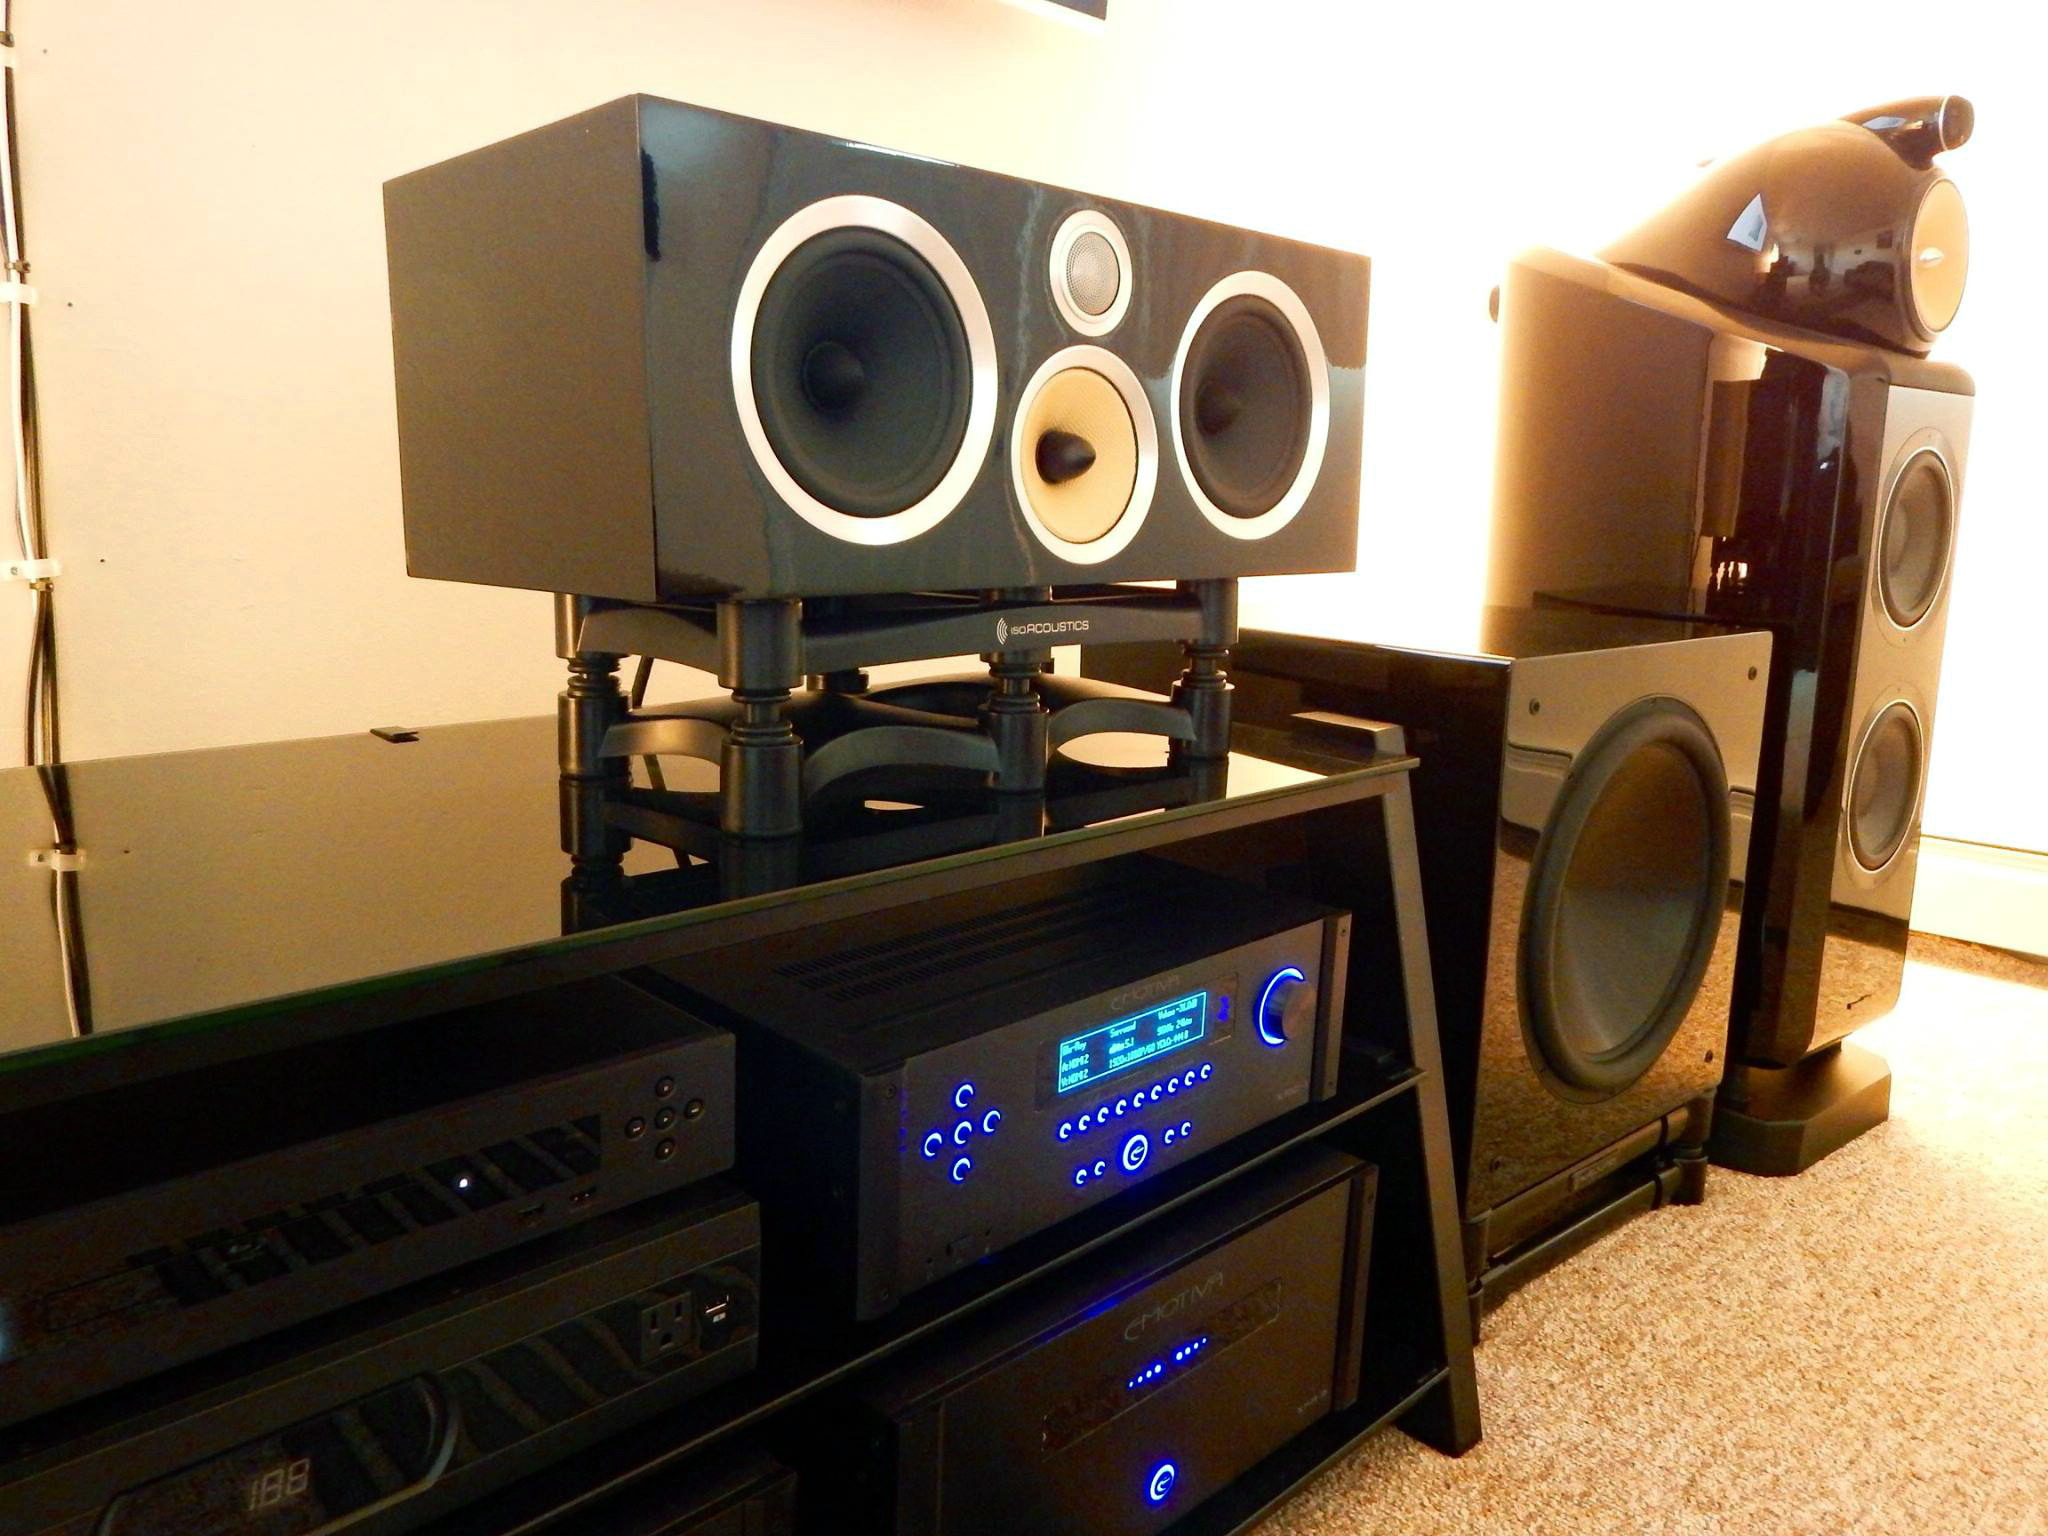 example picture of a home surround sound system setup